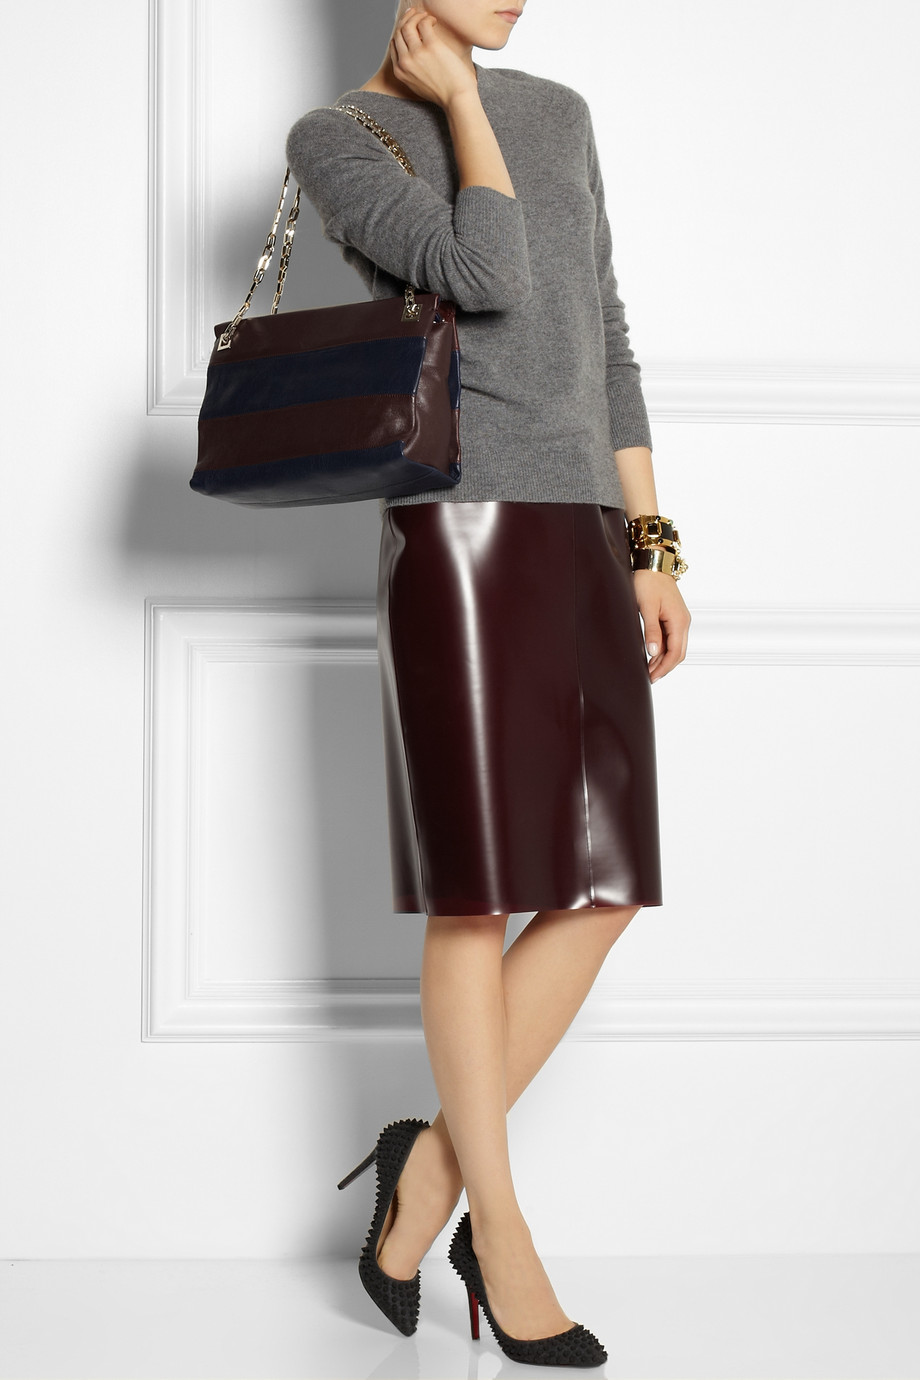 Victoria Beckham bags for autumn-winter 2013-2014 (14)